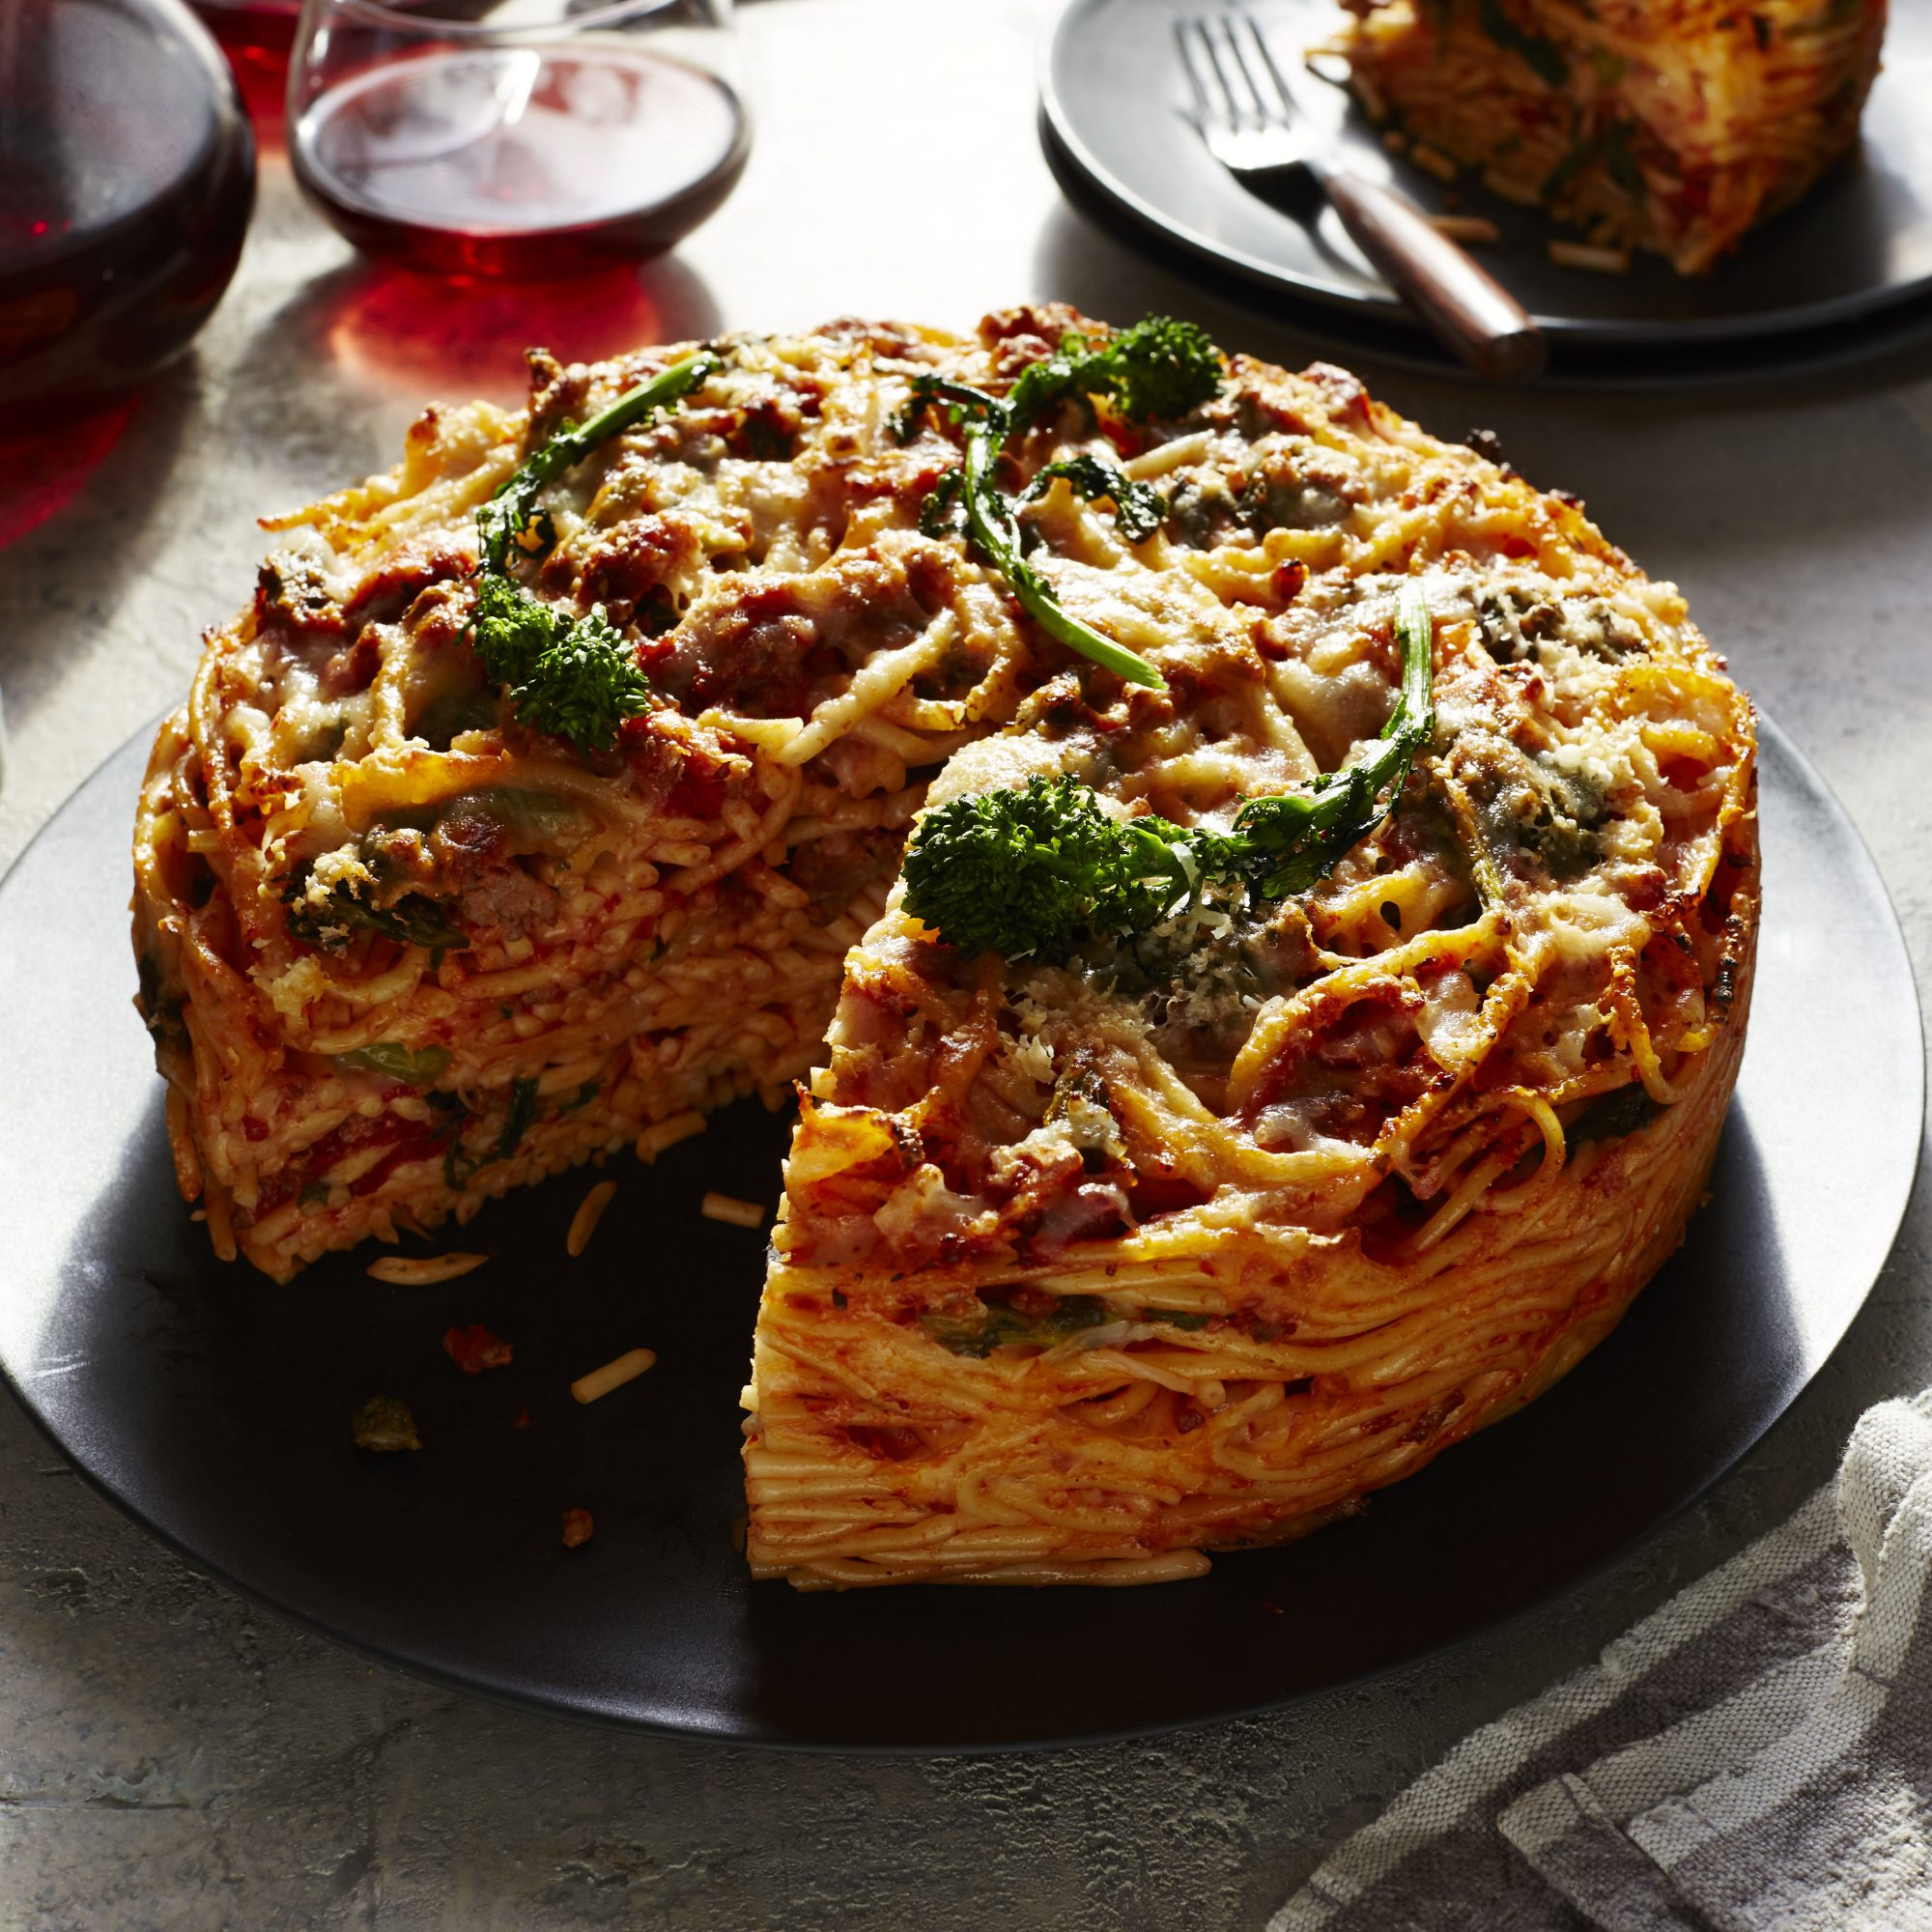 Sausage and Broccoli Rabe Pasta Pie image